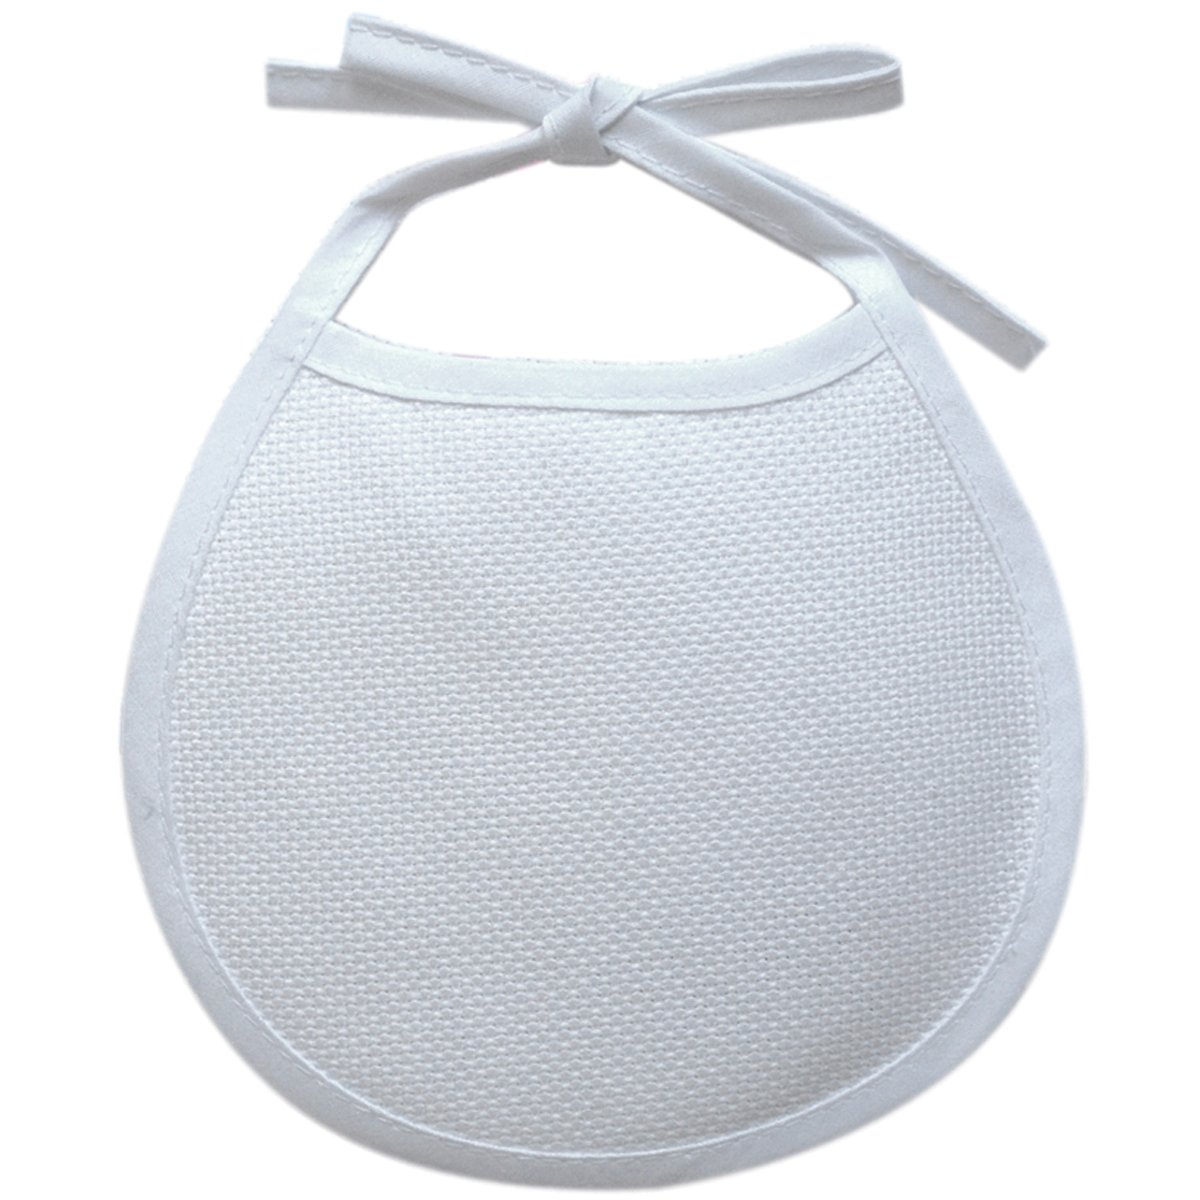 DMC BB3650-6750 Cotton/Polyester 5-1/2-Inch Baby Soft Infant Bib with Trim, White Notions - In Network